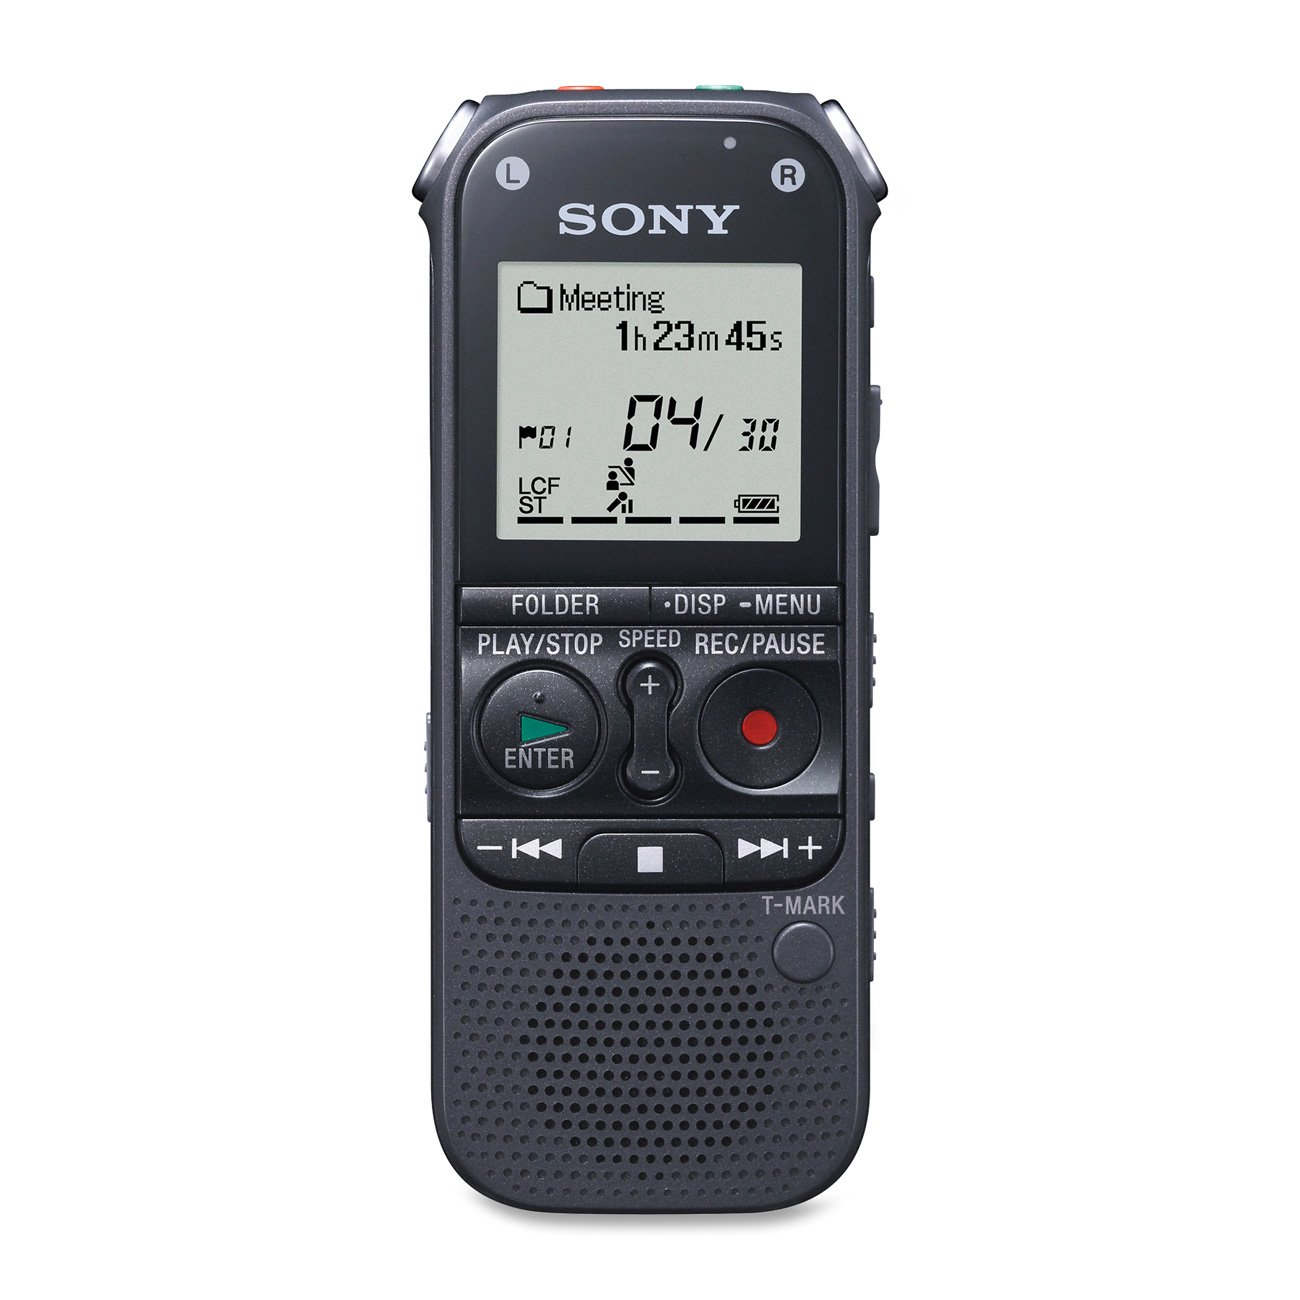 The Best Digital Voice Recorder Reviews & Buying Guide 1